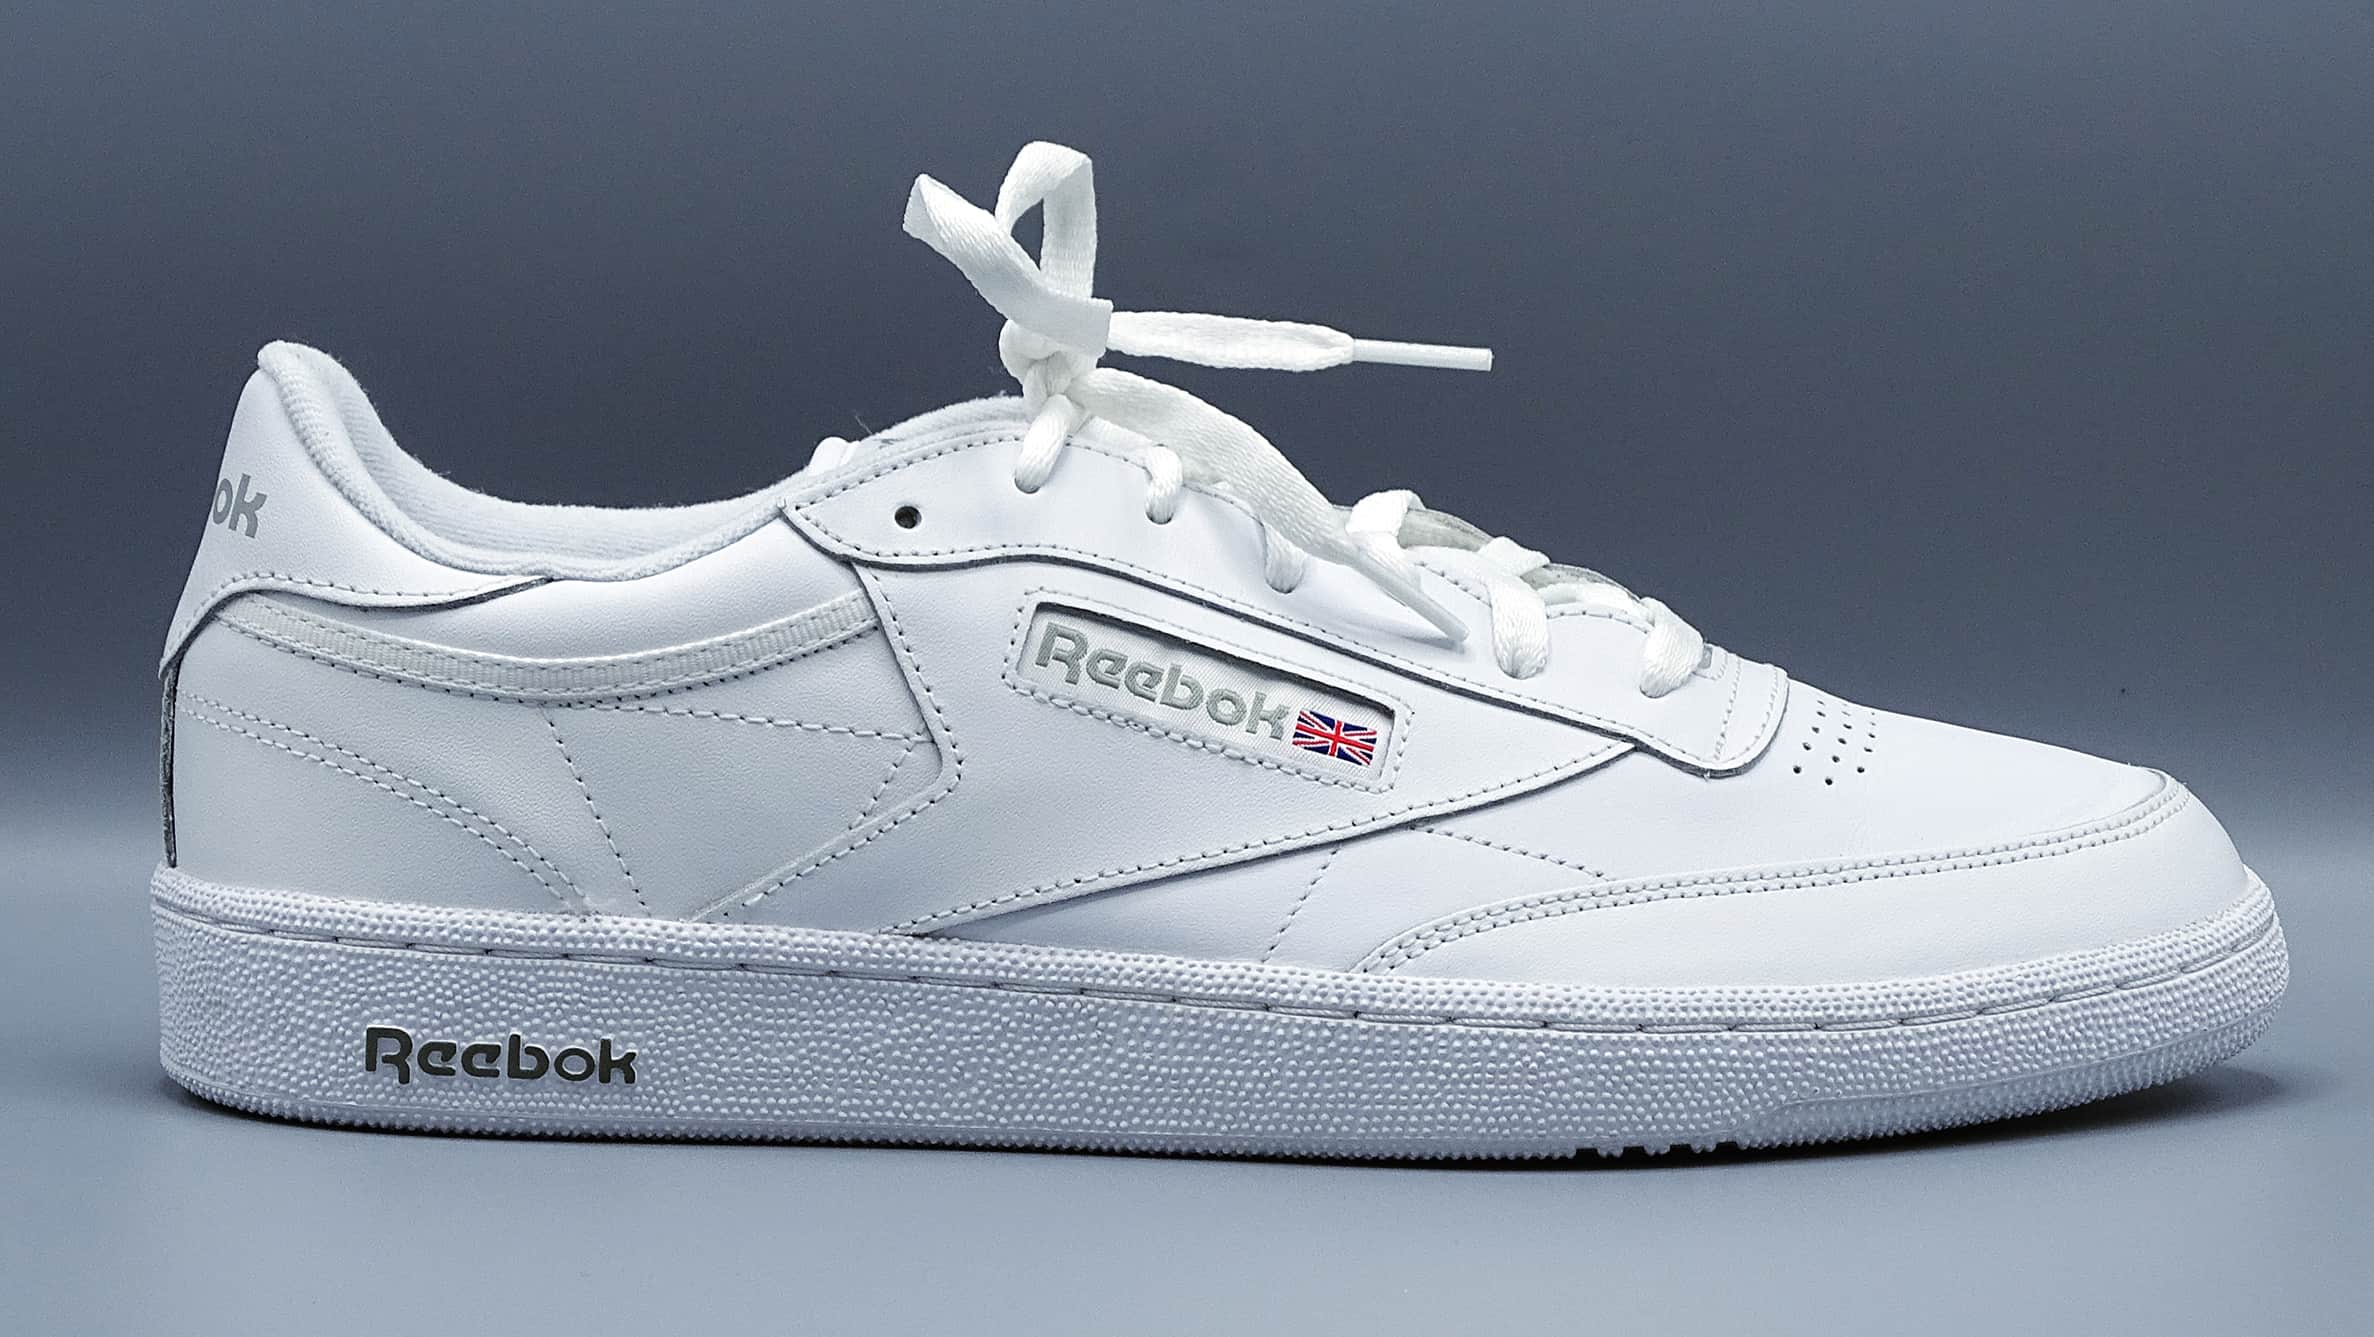 Men's sleek profile all white reebok sneaker